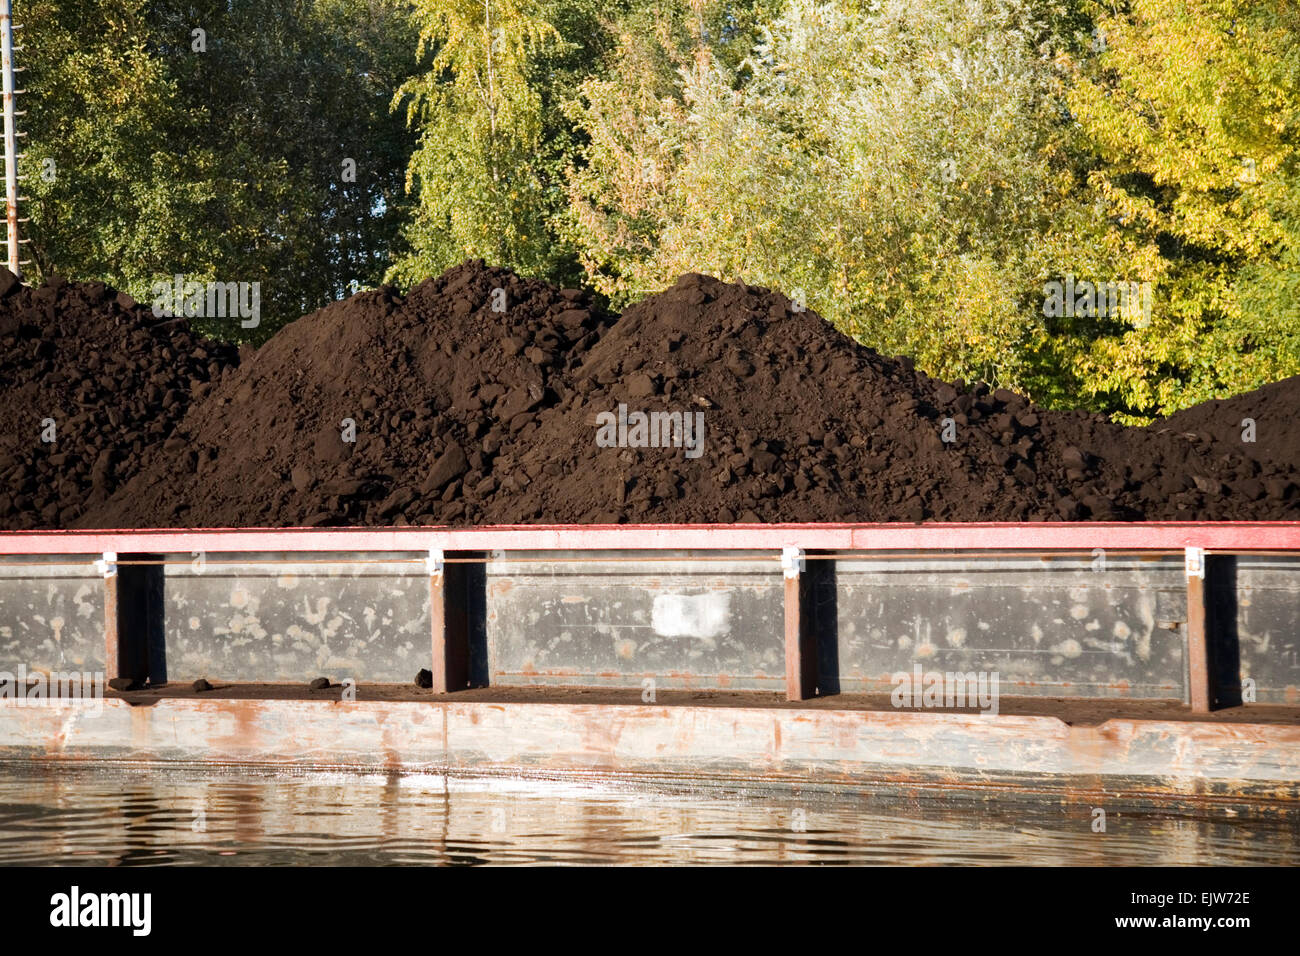 Brown coal loaded on an barge in Germany Stock Photo